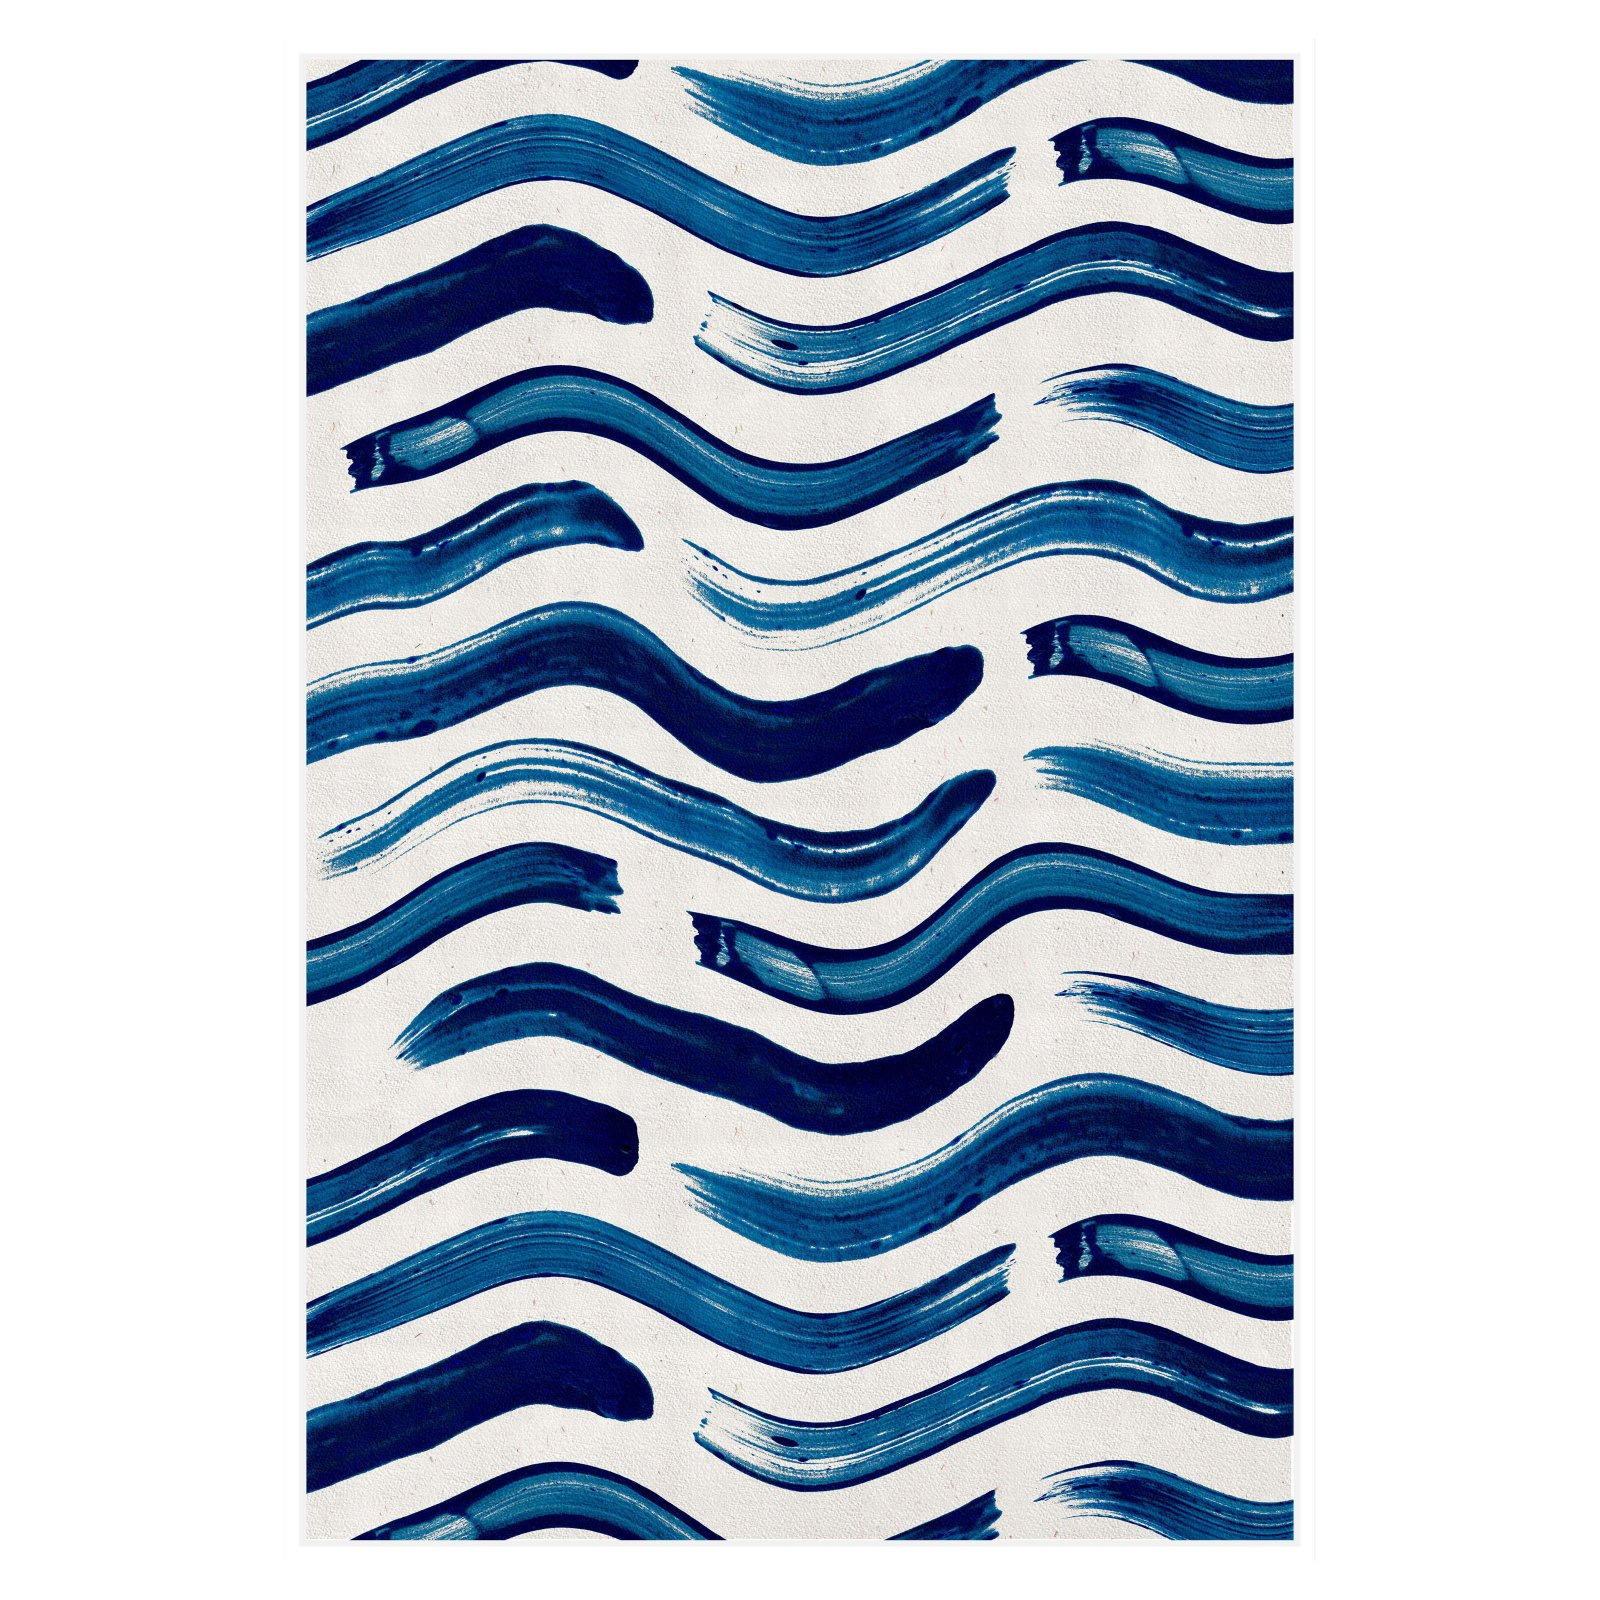 Ptm Images Fading Waves Ii Decorative Canvas Wall Art Wall Canvas Canvas Wall Art Ptm Images